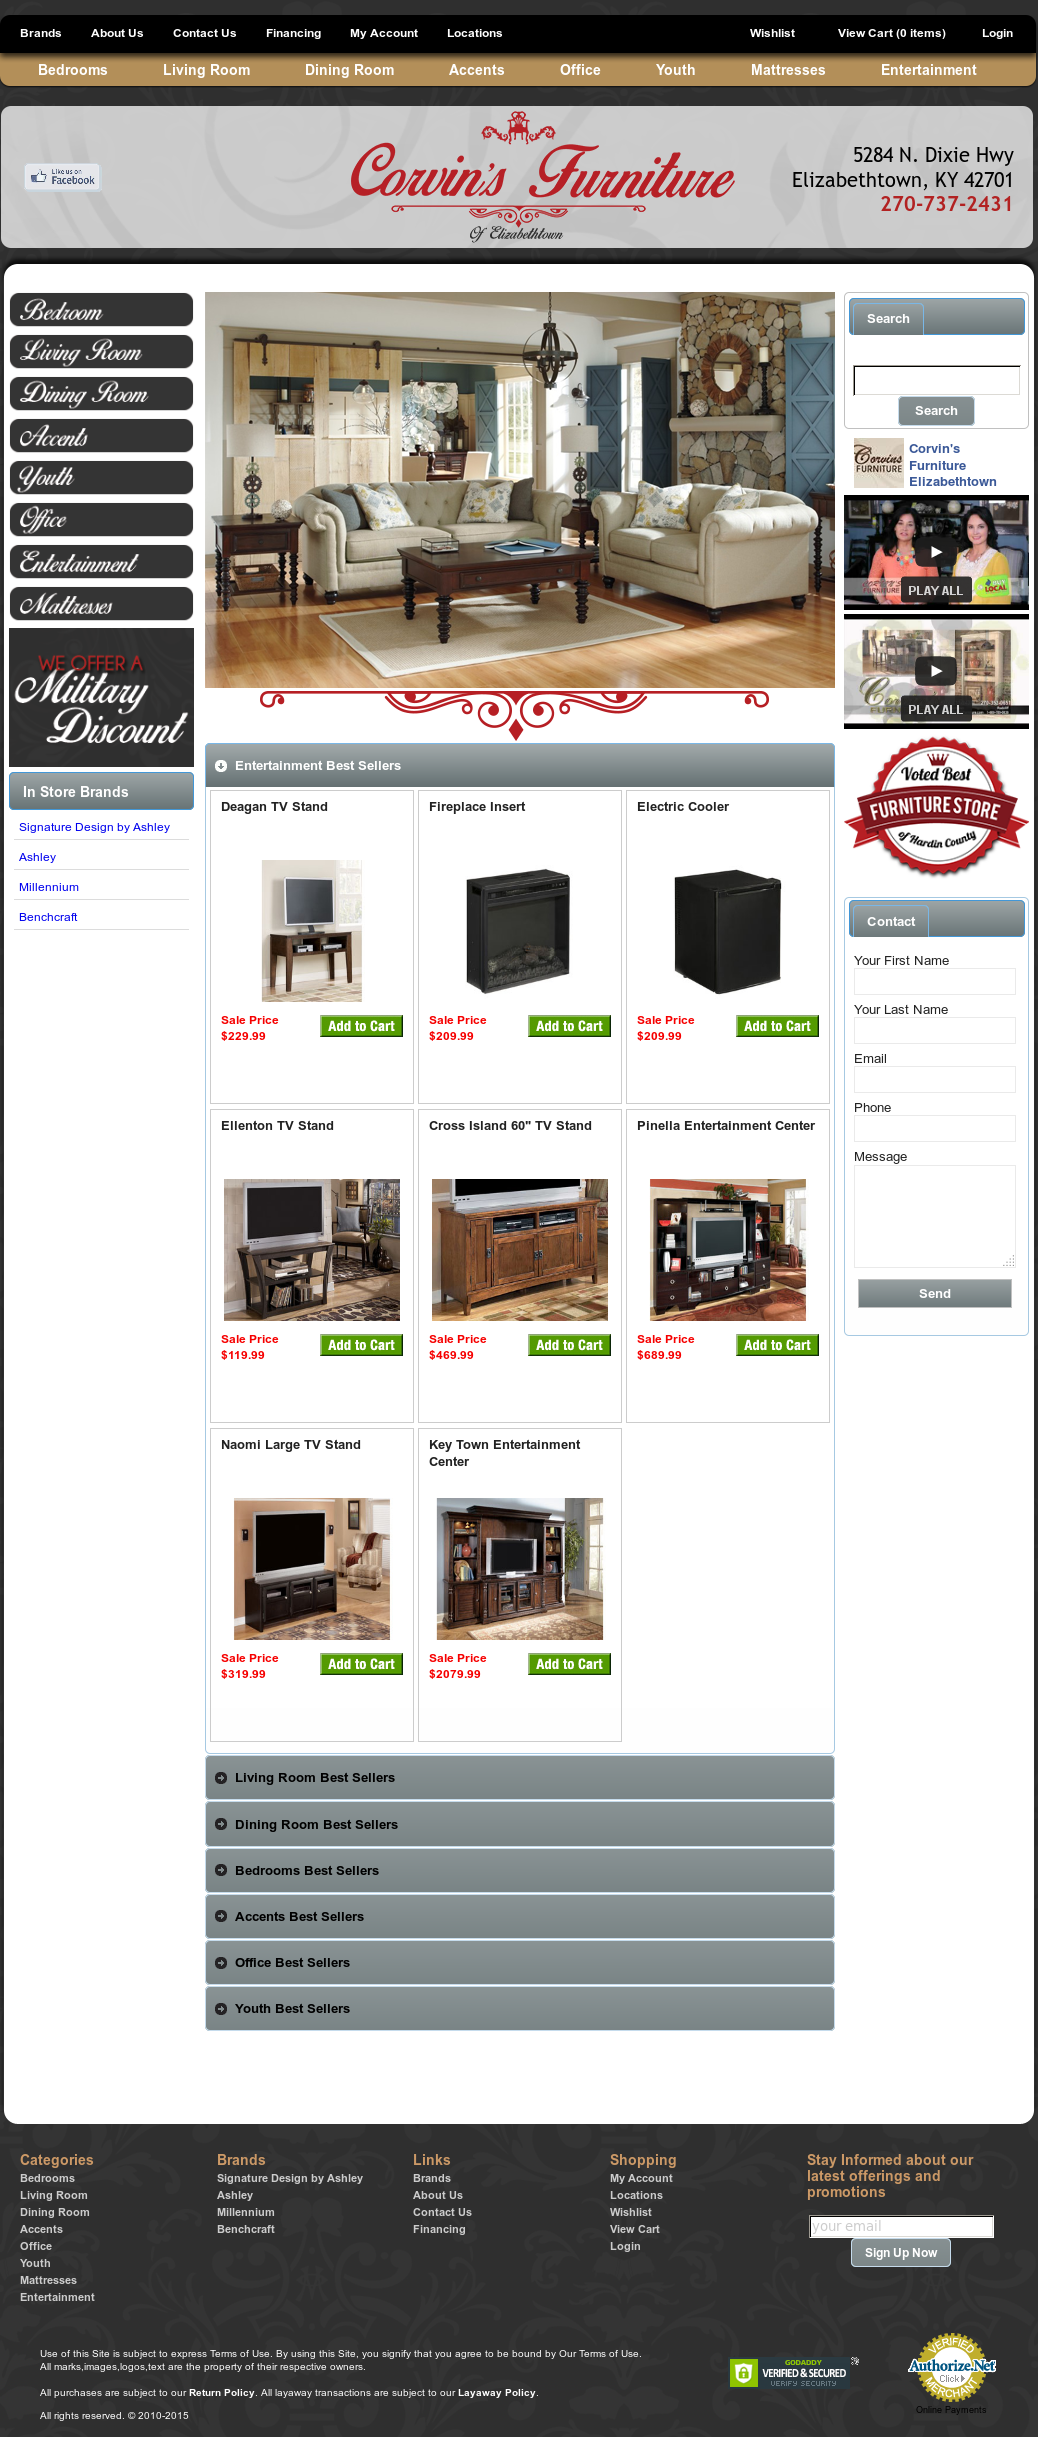 Corvins Furniture Website History